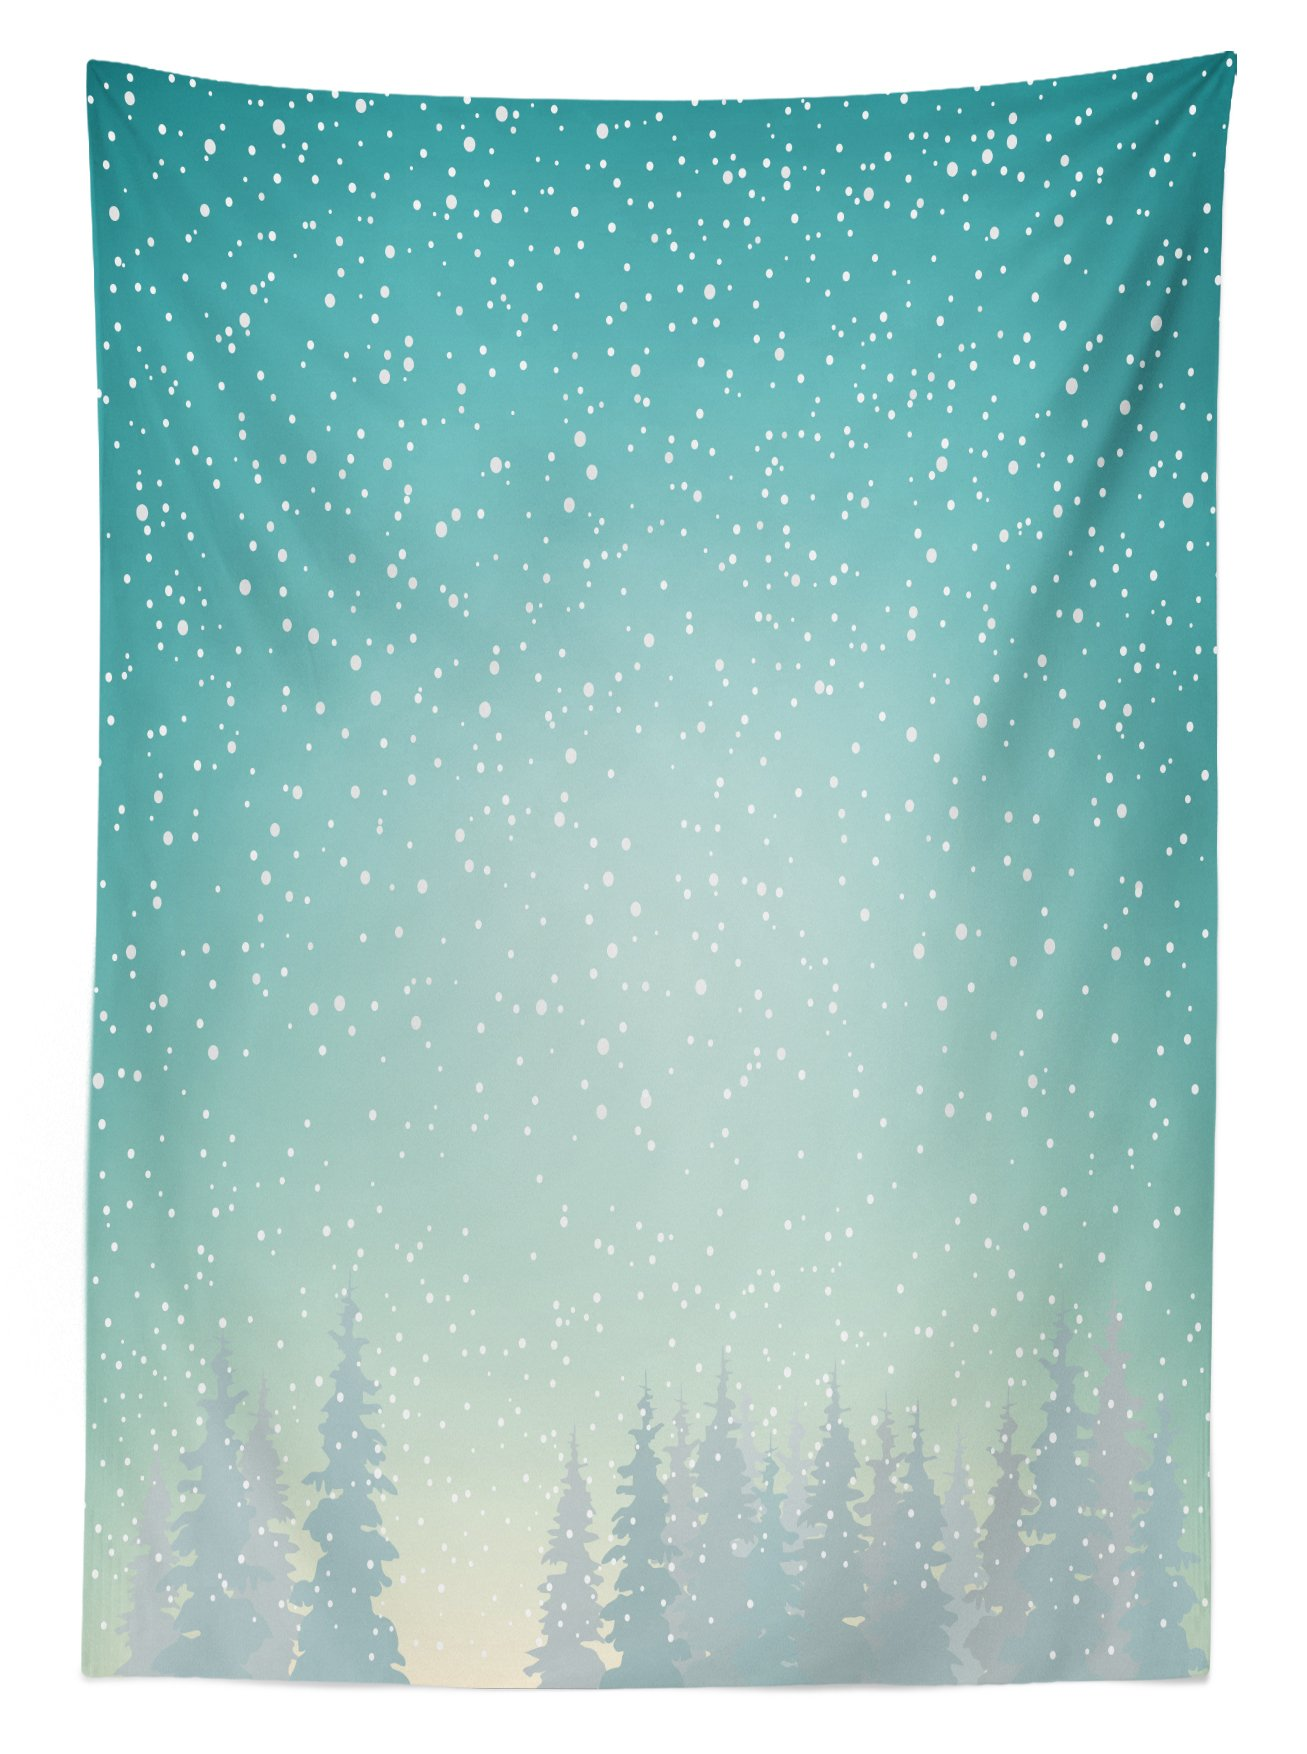 Ambesonne Winter Outdoor Tablecloth, Snow Falls on The Spruce Forest Fir Trees Seasonal Nature Woods ICY Cold Xmas, Decorative Washable Picnic Table Cloth, 58 X 84 inches, Turquoise White by Ambesonne (Image #1)